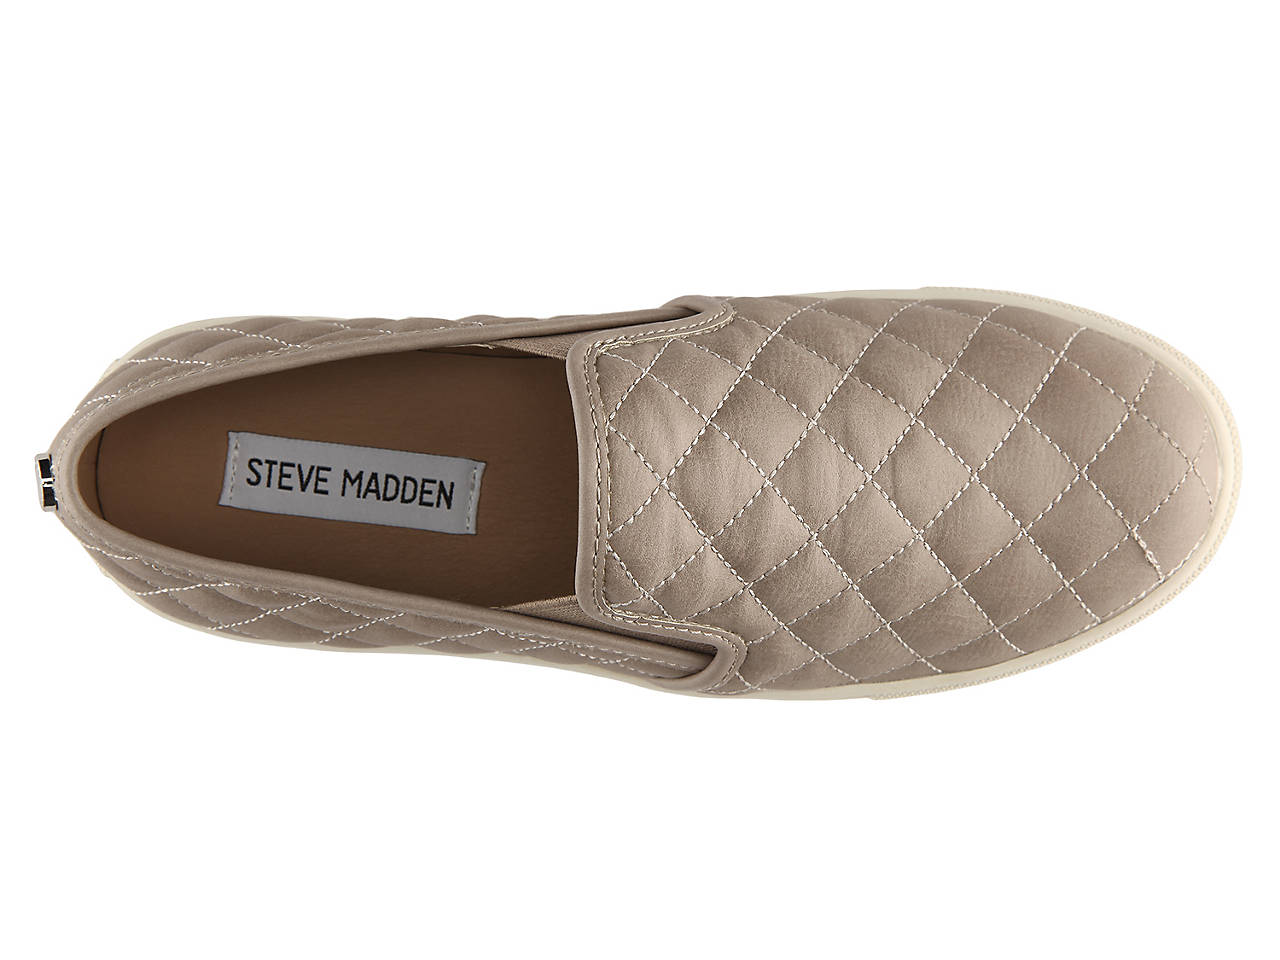 739d227b118 Steve Madden Ecentrcq Slip-On Sneaker Women s Shoes